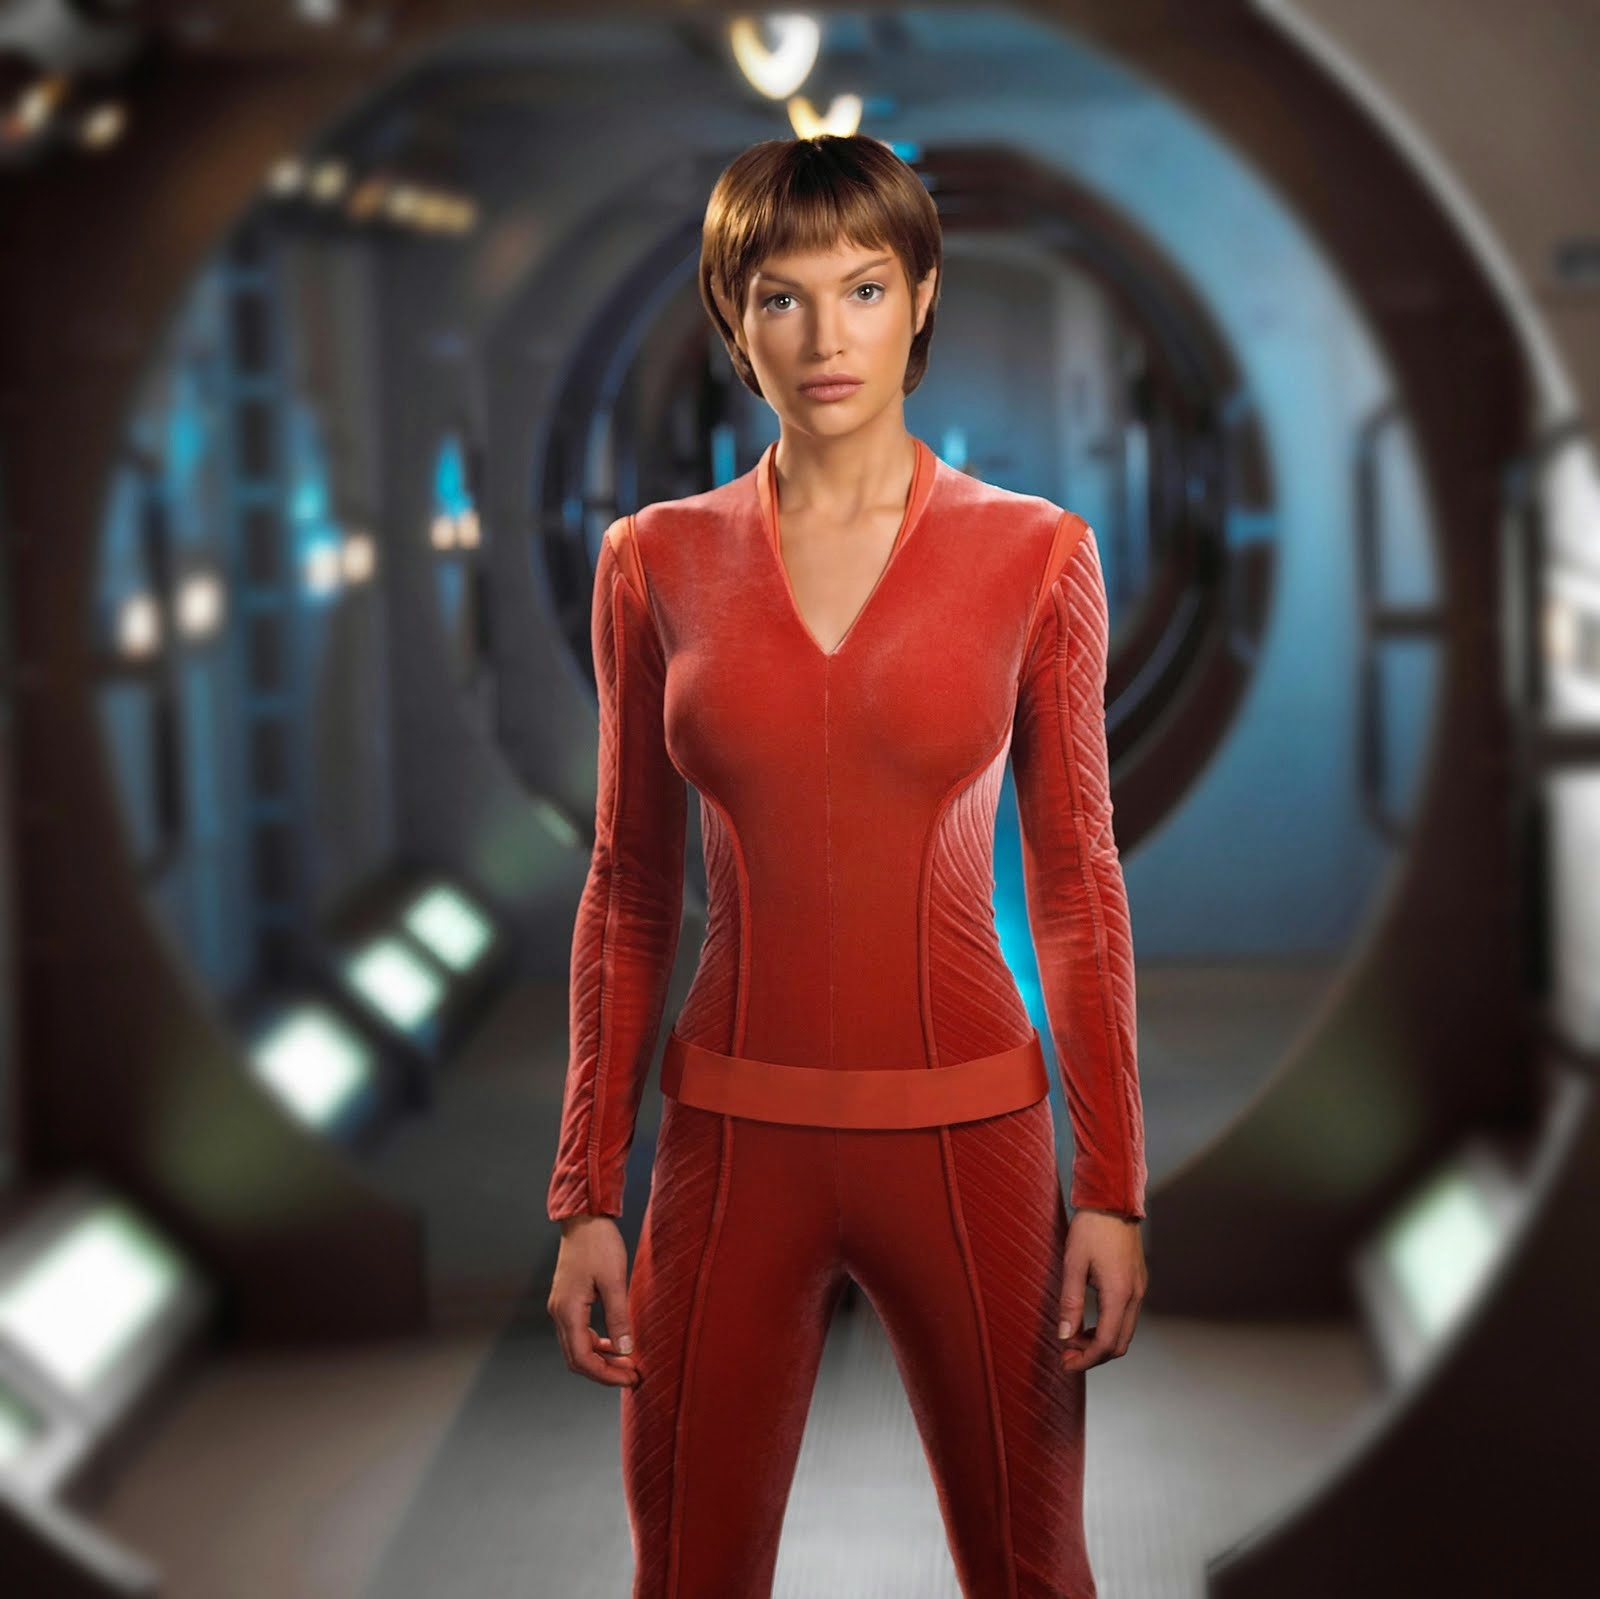 Star trek super ho t ladies images 753